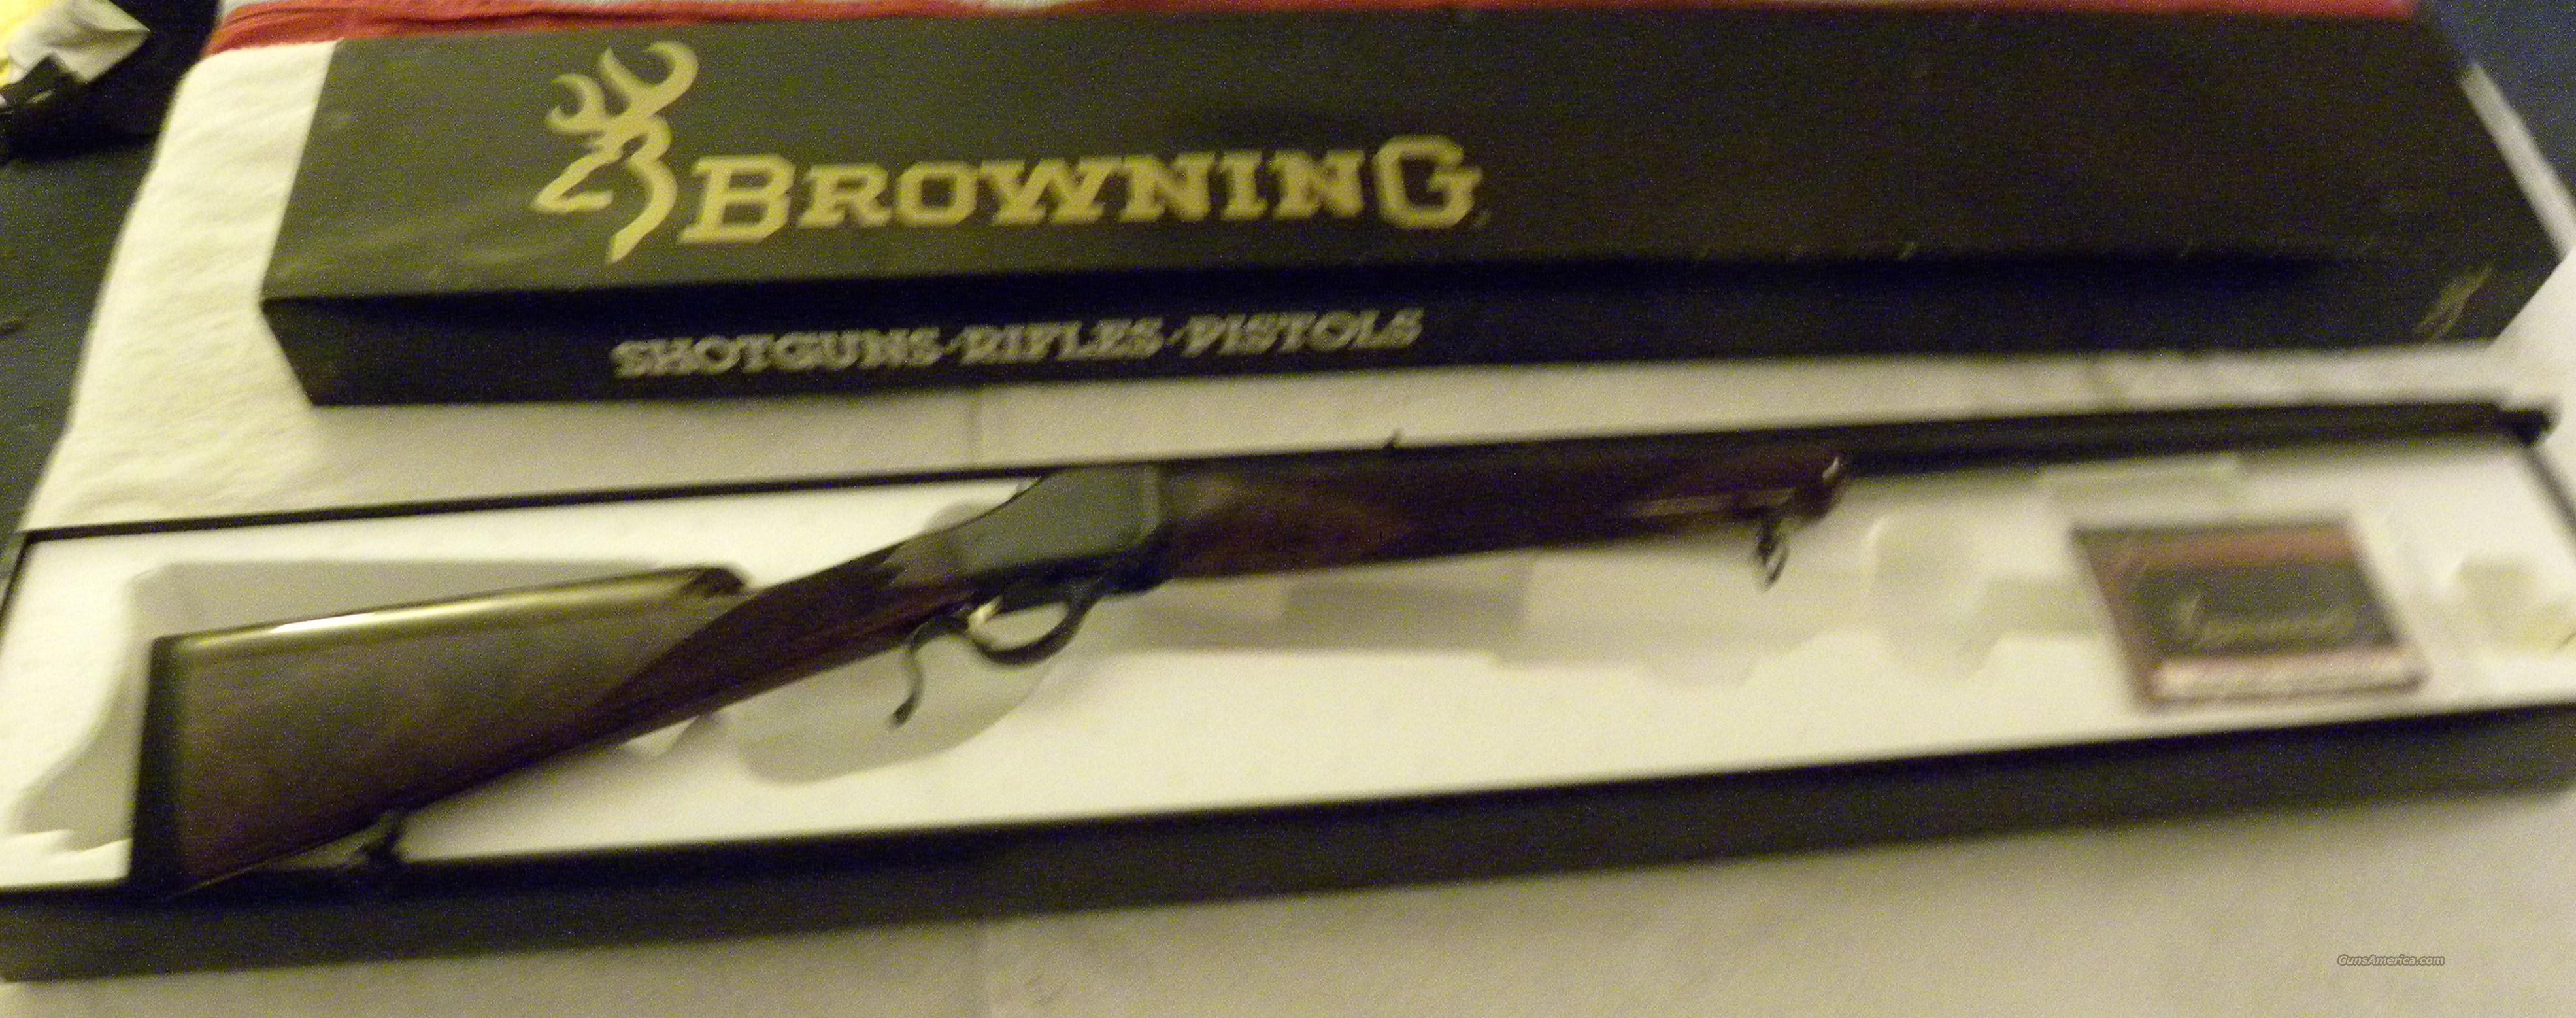 Browning 1885 Hi-Wall Single Shot Rifle  Guns > Rifles > Browning Rifles > Singe Shot